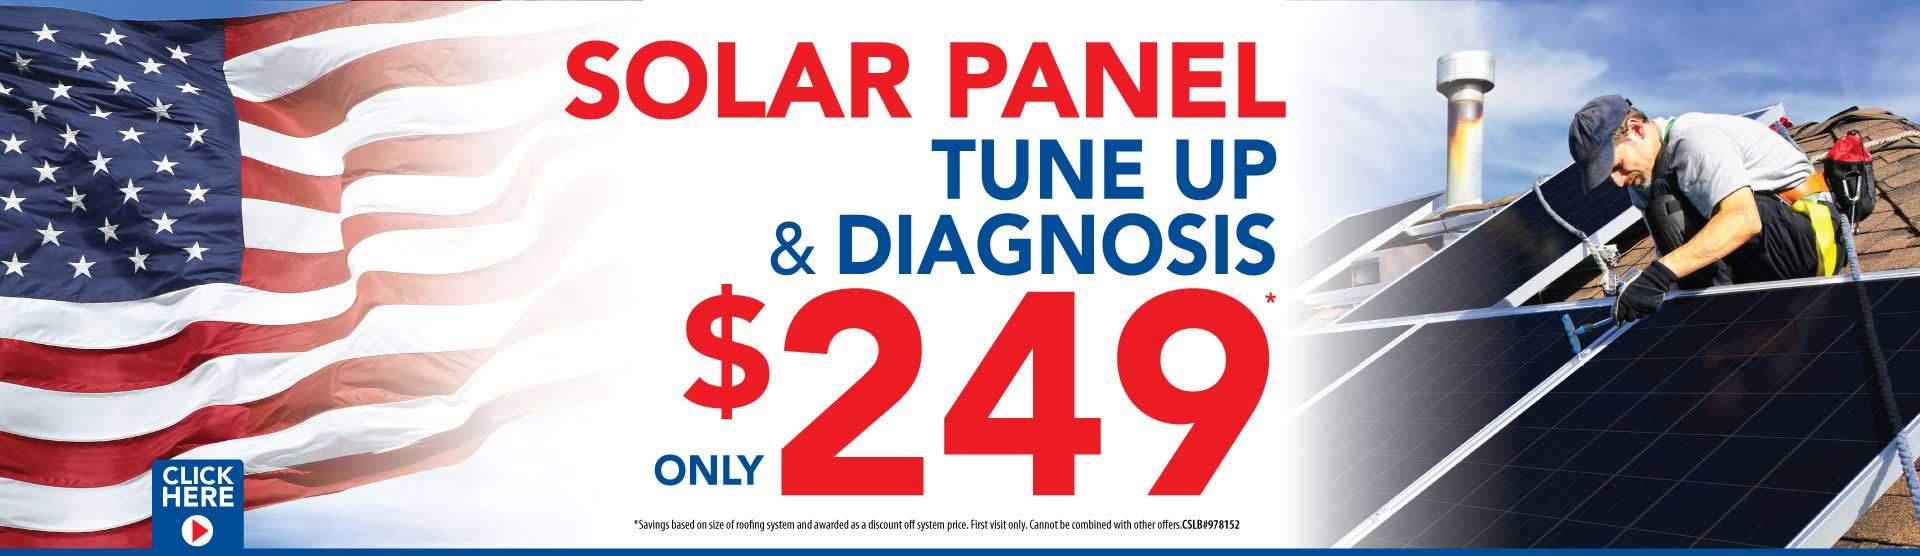 Solar Panel Tune Up by Semper Solaris